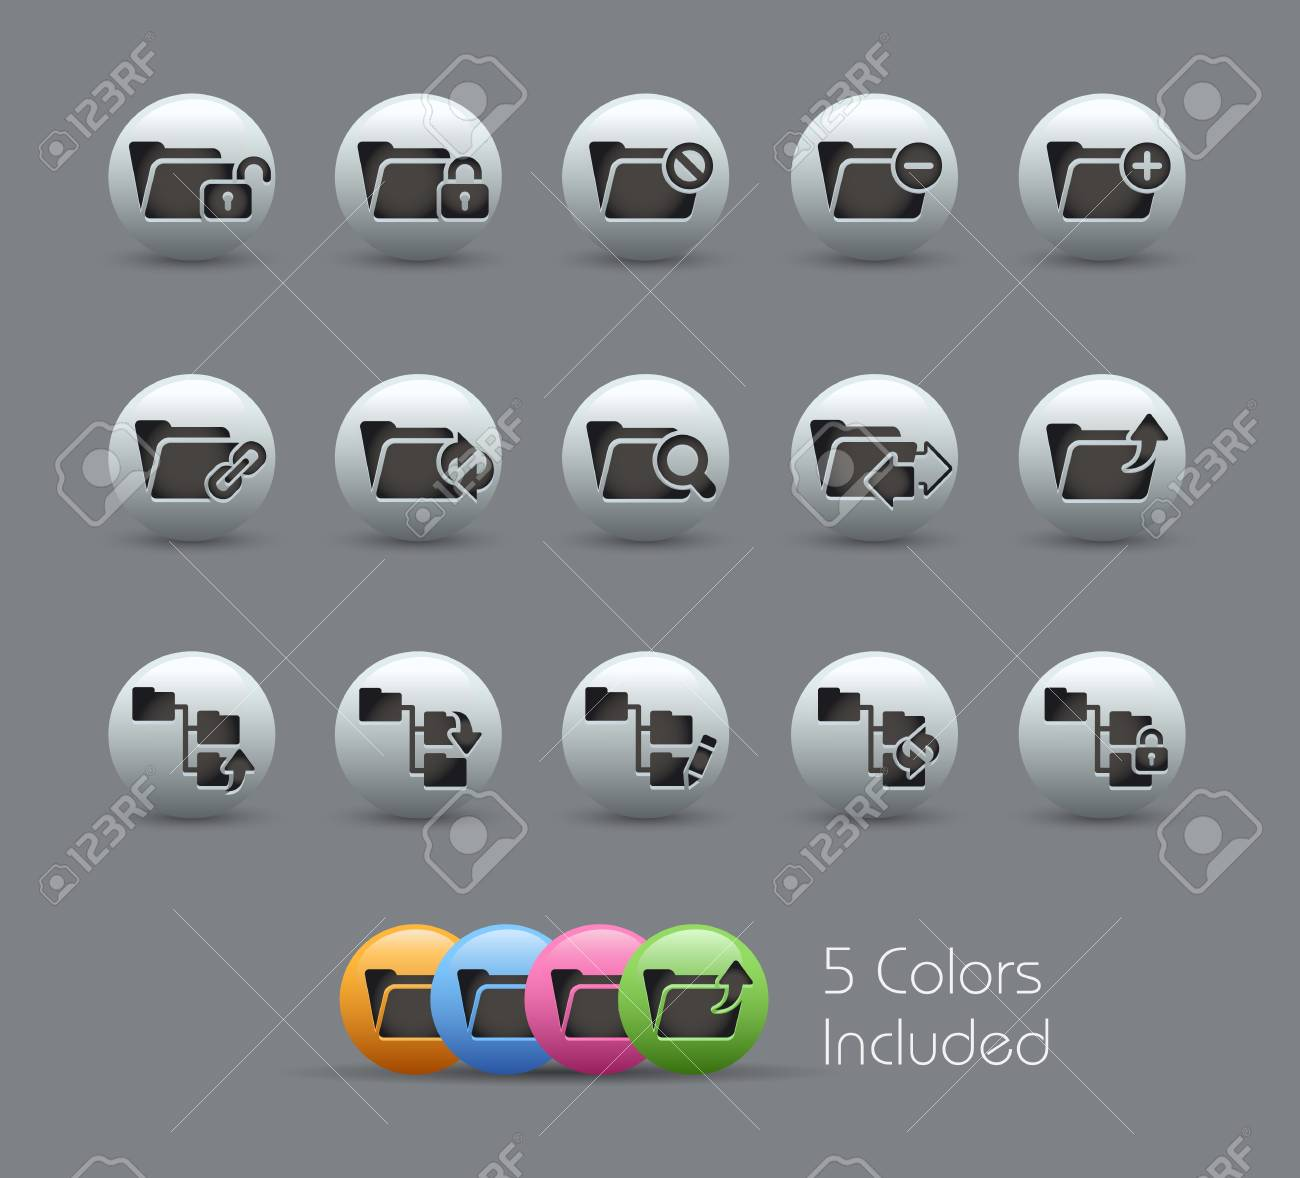 Folder Icons - 1 of 2 --  file includes 5 colors Stock Vector - 15561758